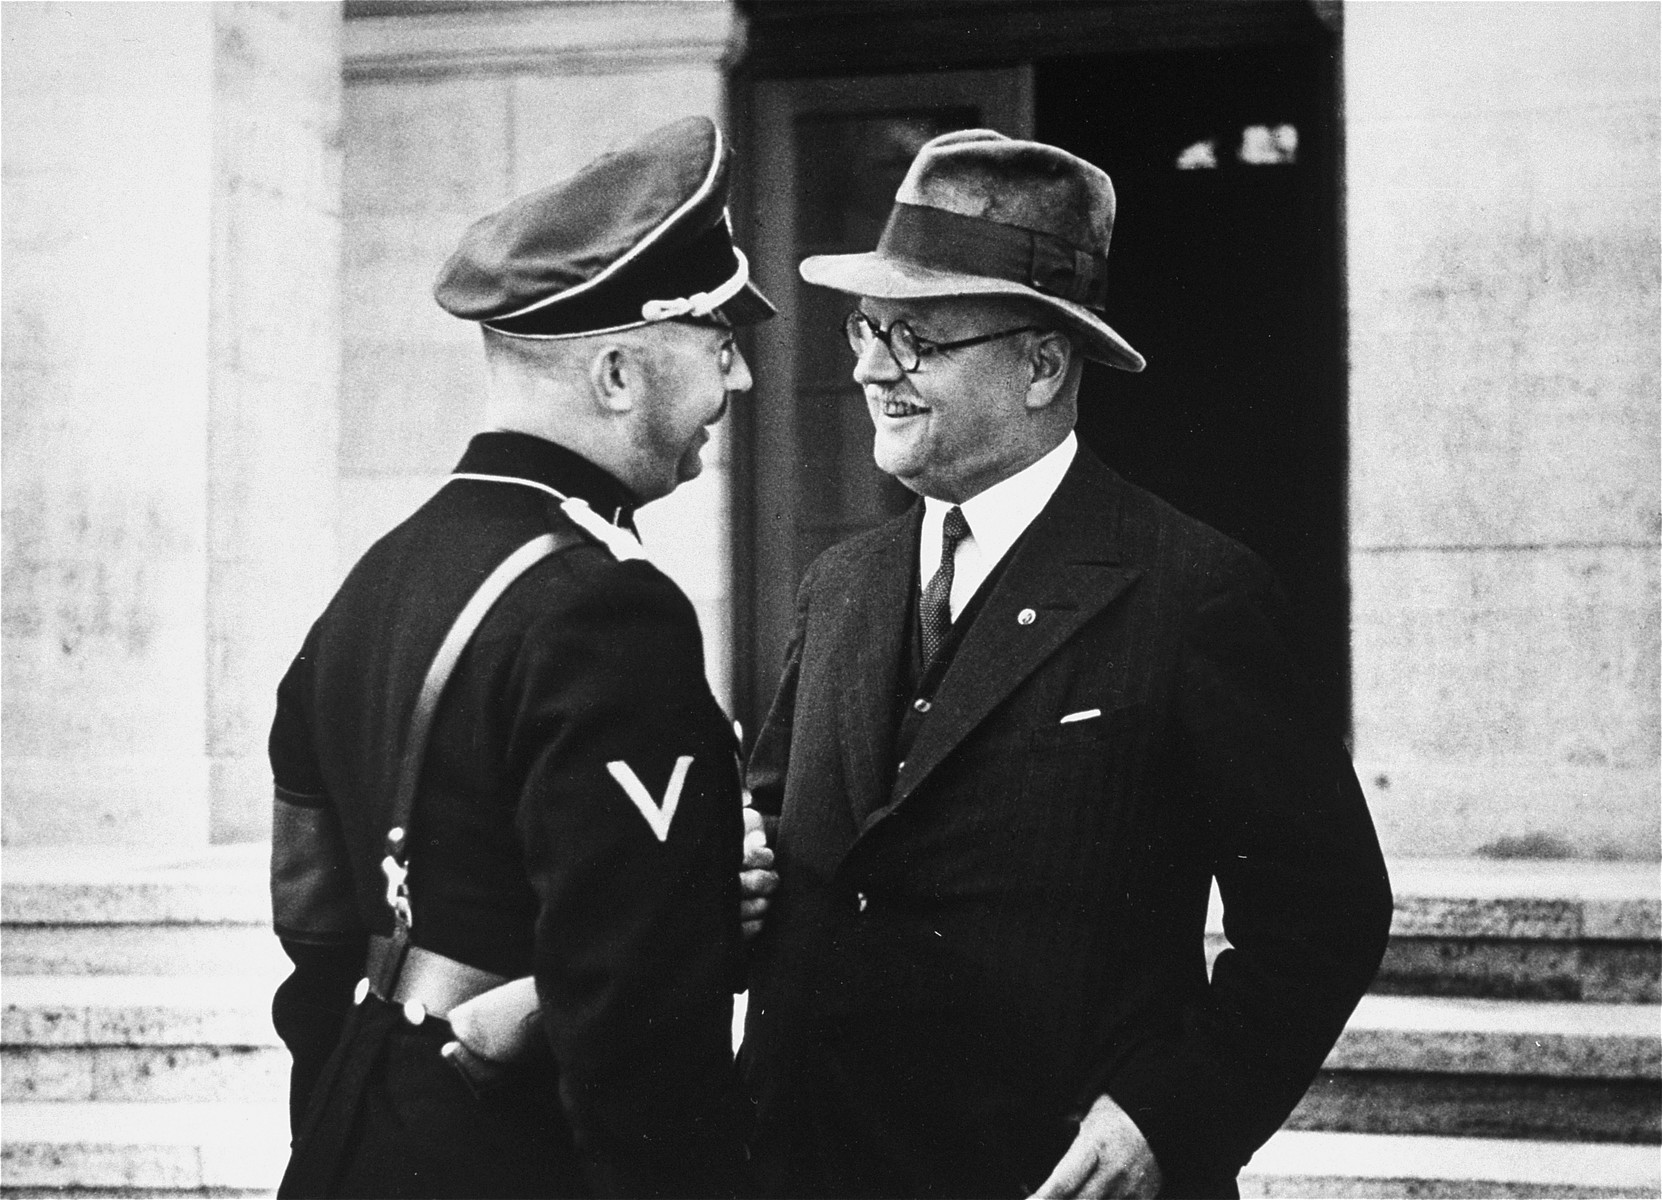 Heinrich Himmler on an official inspection, is greeted by Franz Xaver Schwarz.  This image is from an album of SS photographs.